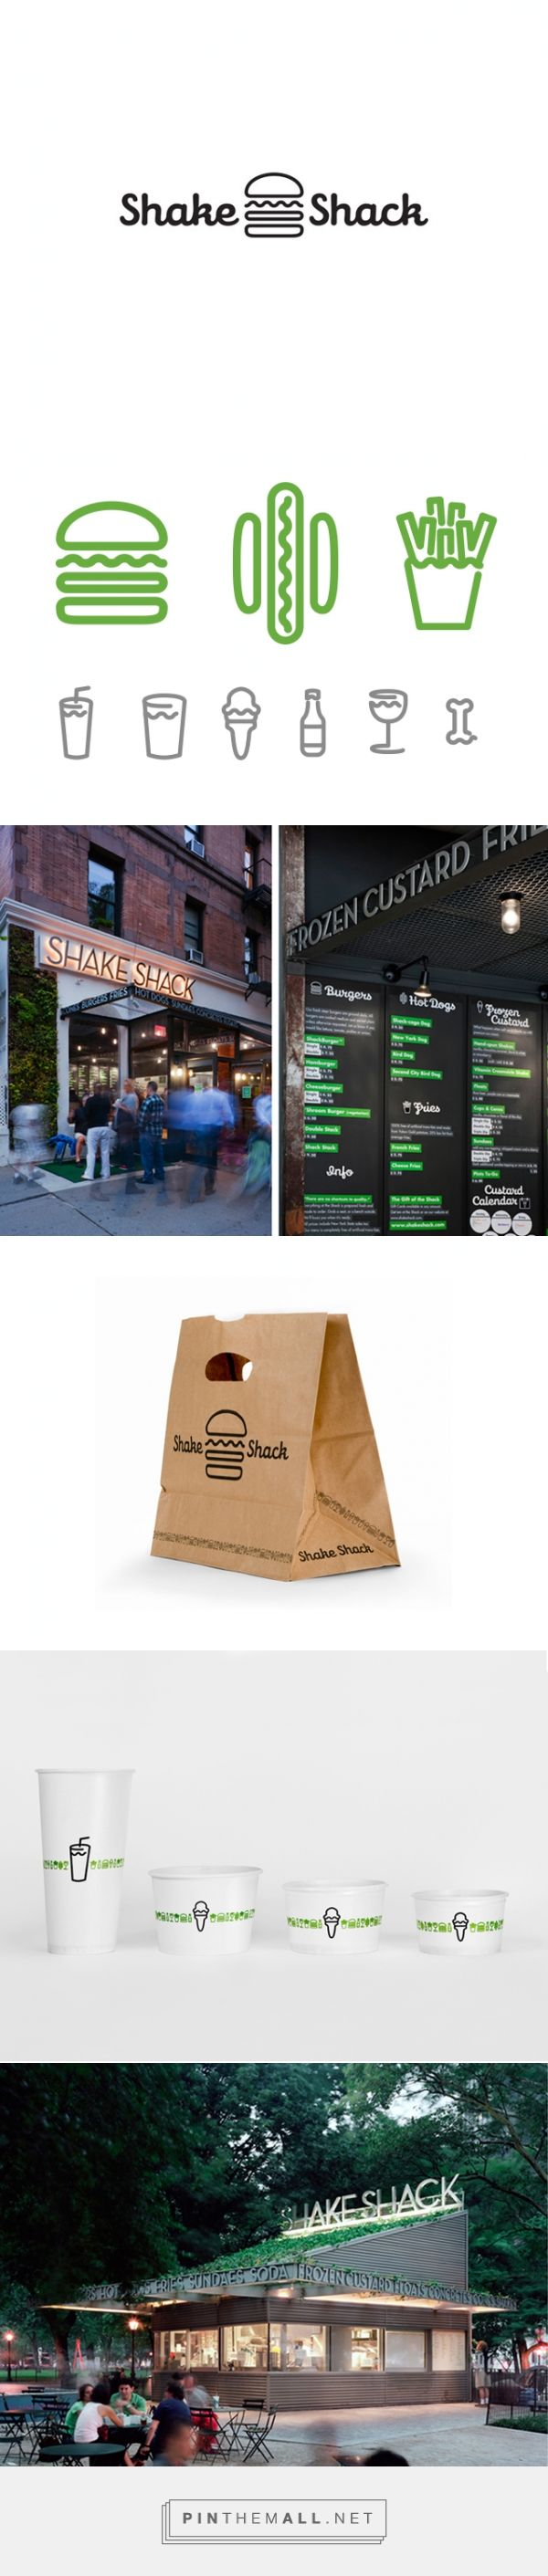 Shake Shack Brand identity and #packaging from the portfolio of Lenny Naar curated by Packaging Diva PD. Looks like lunchtime to me created via http://lennynaar.com/portfolio/shake-shack-brand-identity/